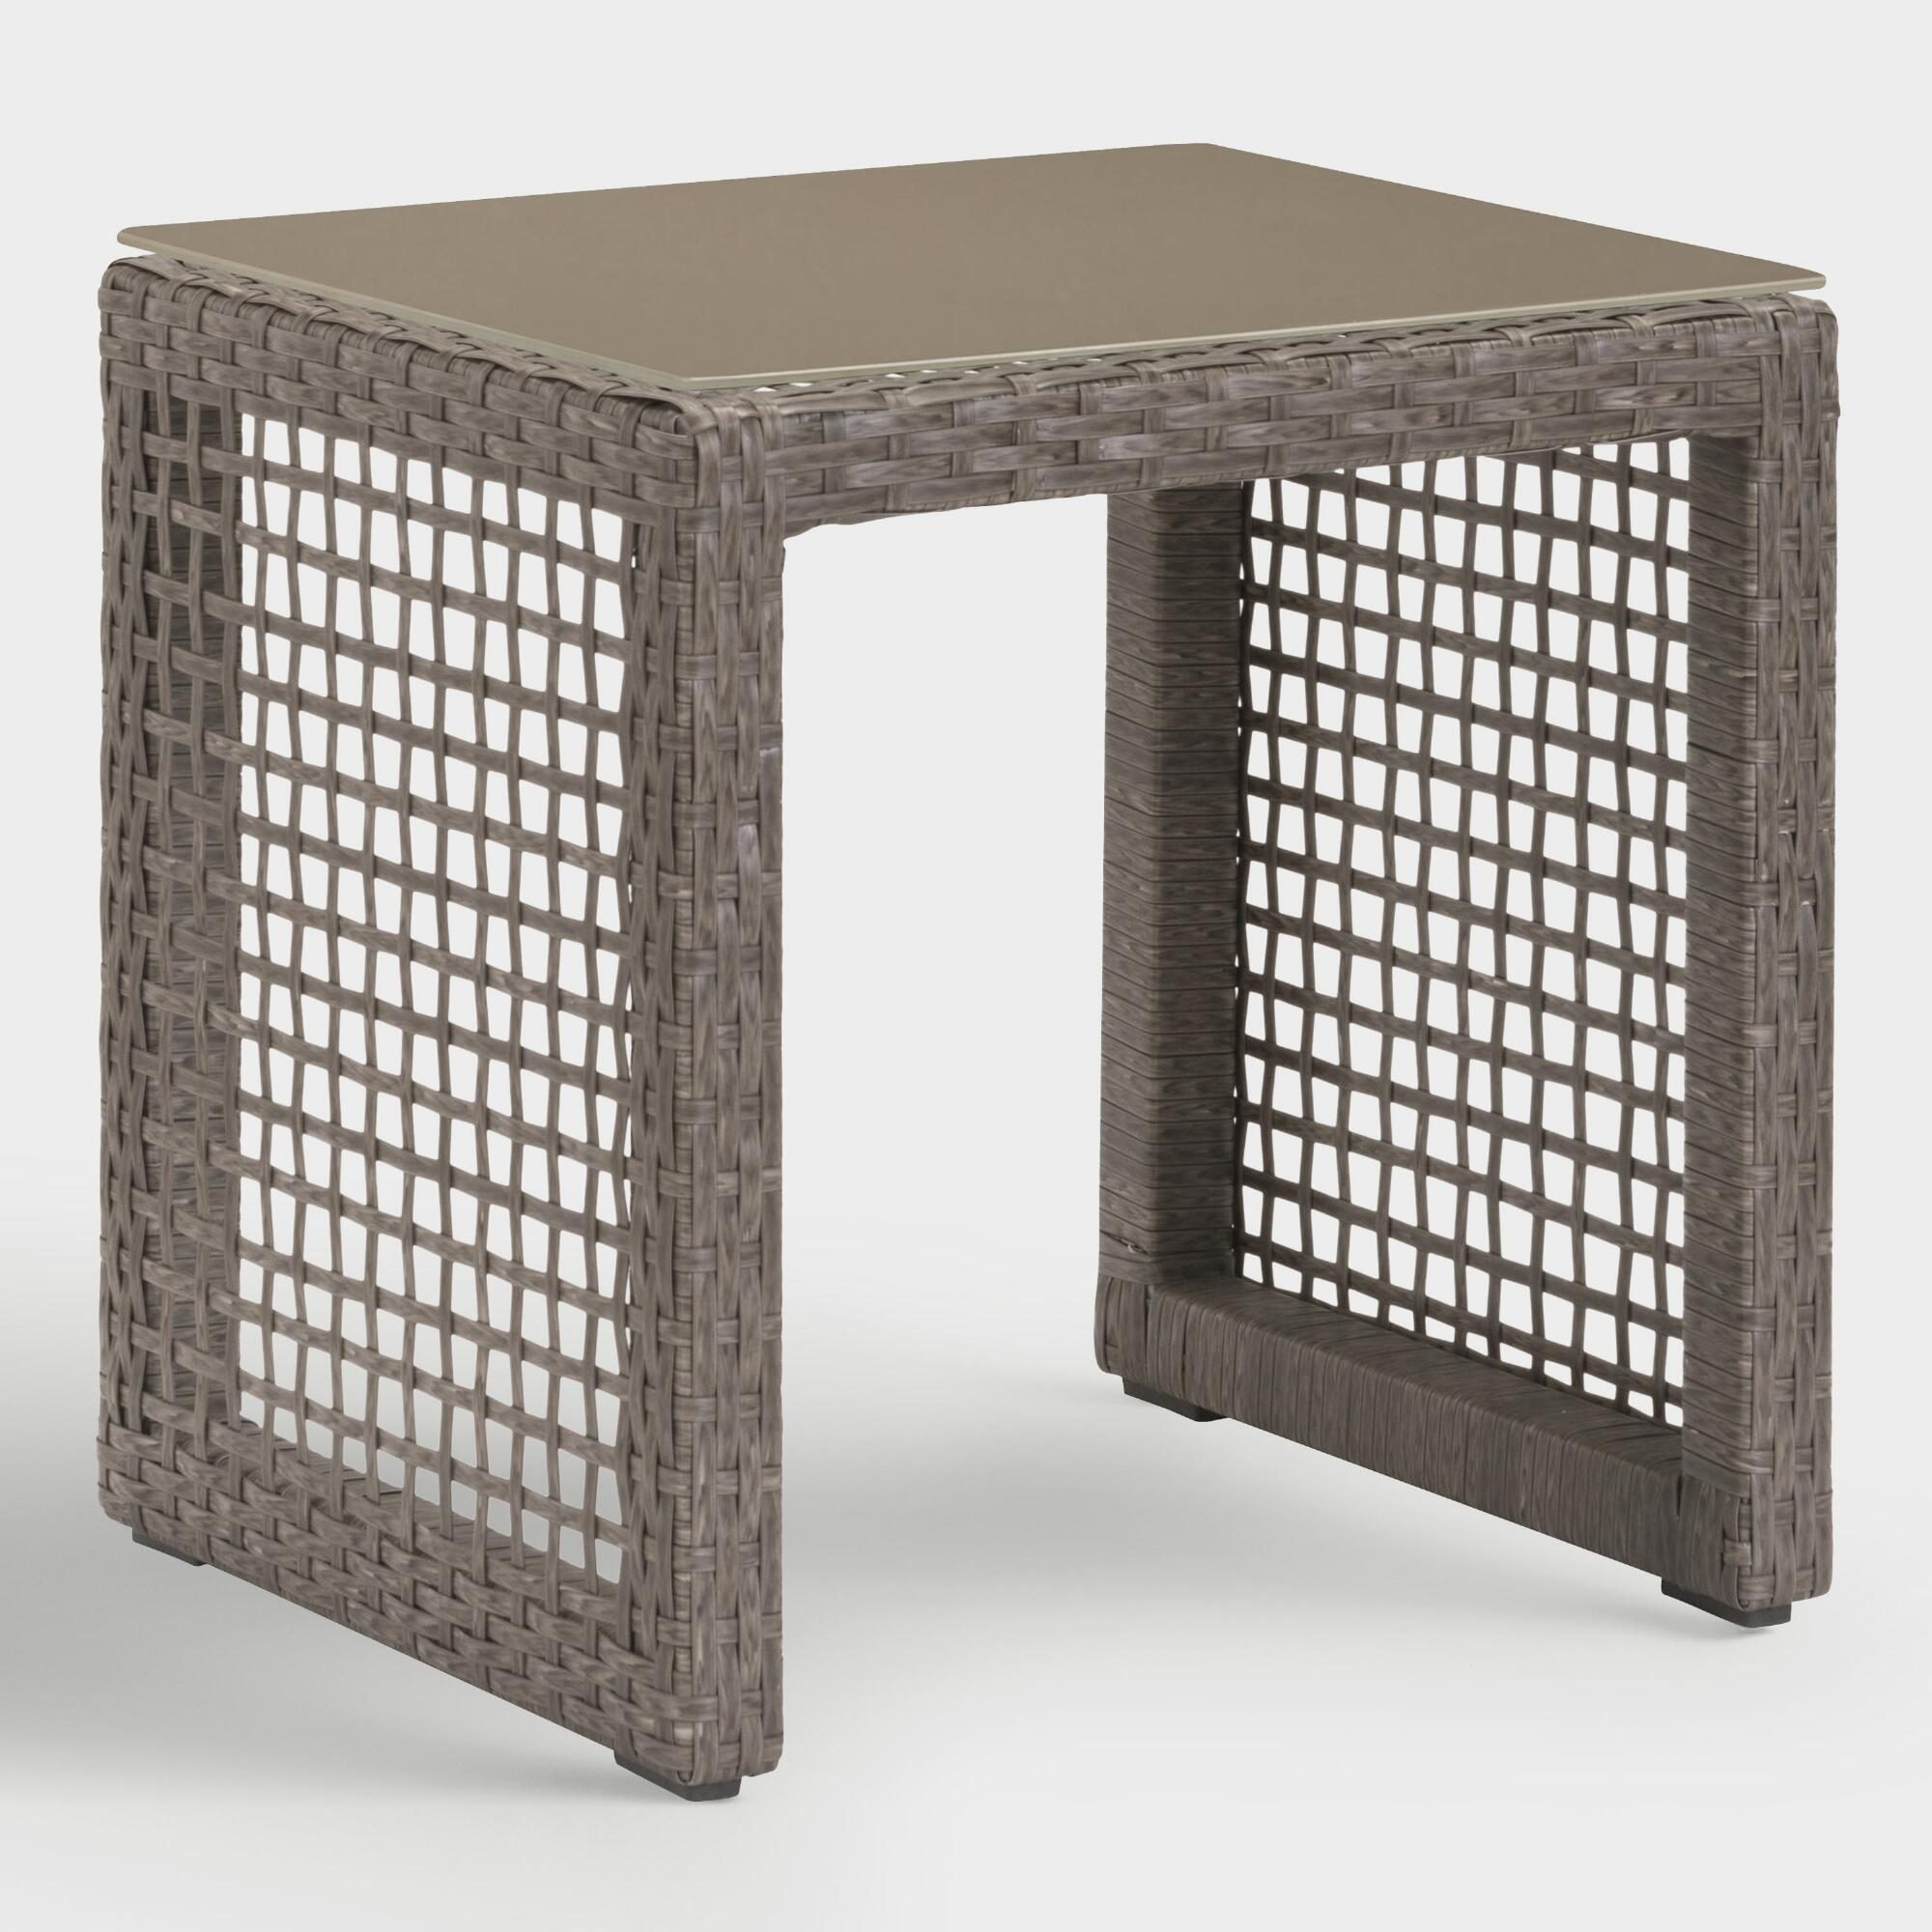 All Weather Wicker Erich Outdoor Patio Occasional End Table: Gray - Resin by World Market